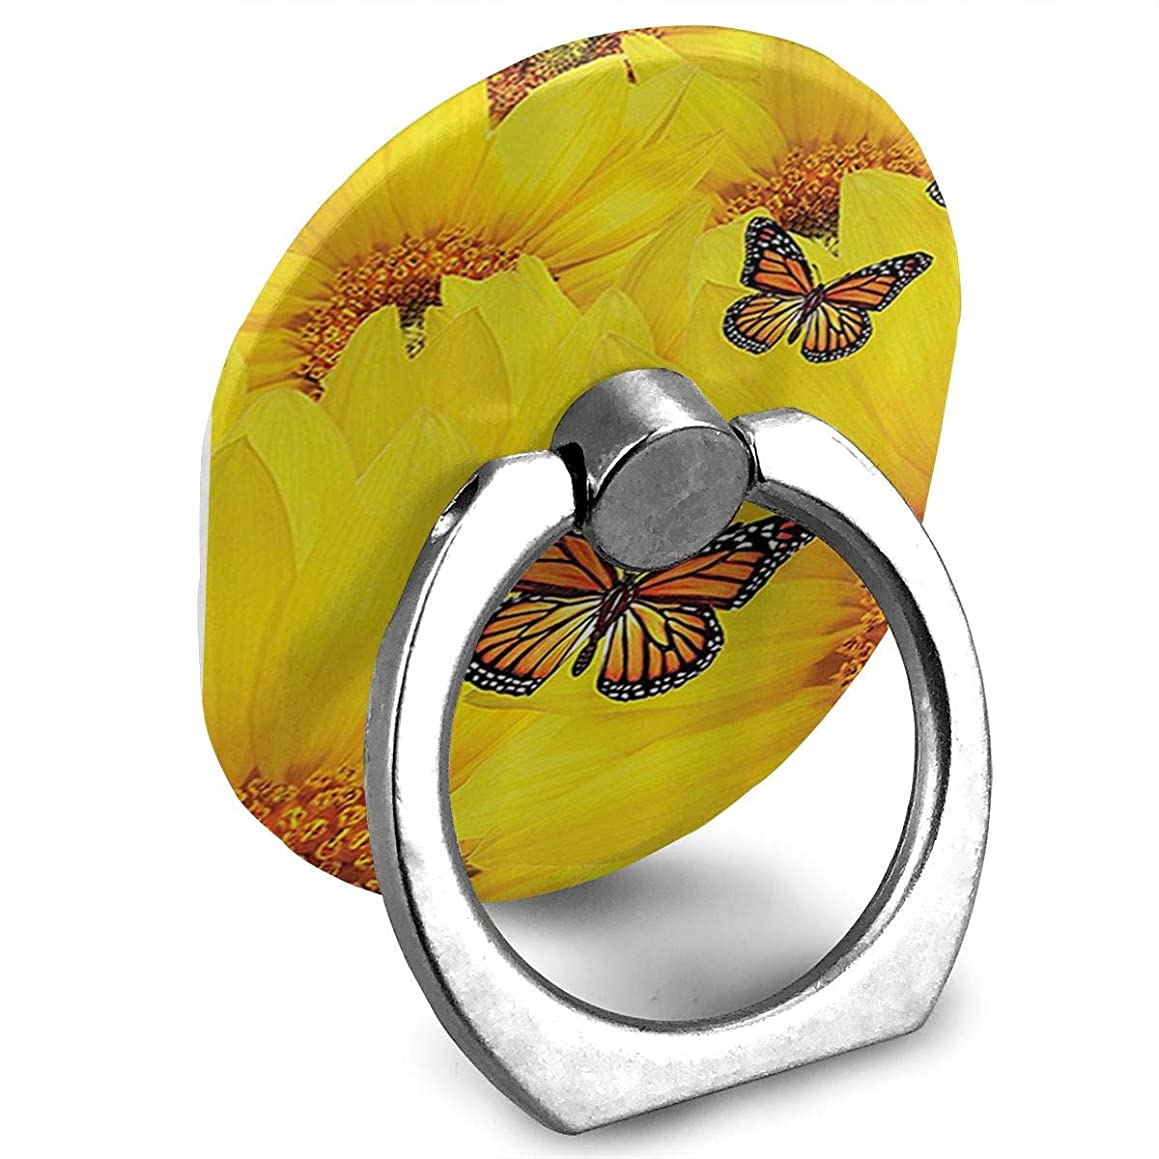 ZYYSLHH Sunflower Flowers ATOP One Another Butterfly Finger Ring Holder, Universal Cell Phone Ring Grip Stand Support for iPhone Android Phone